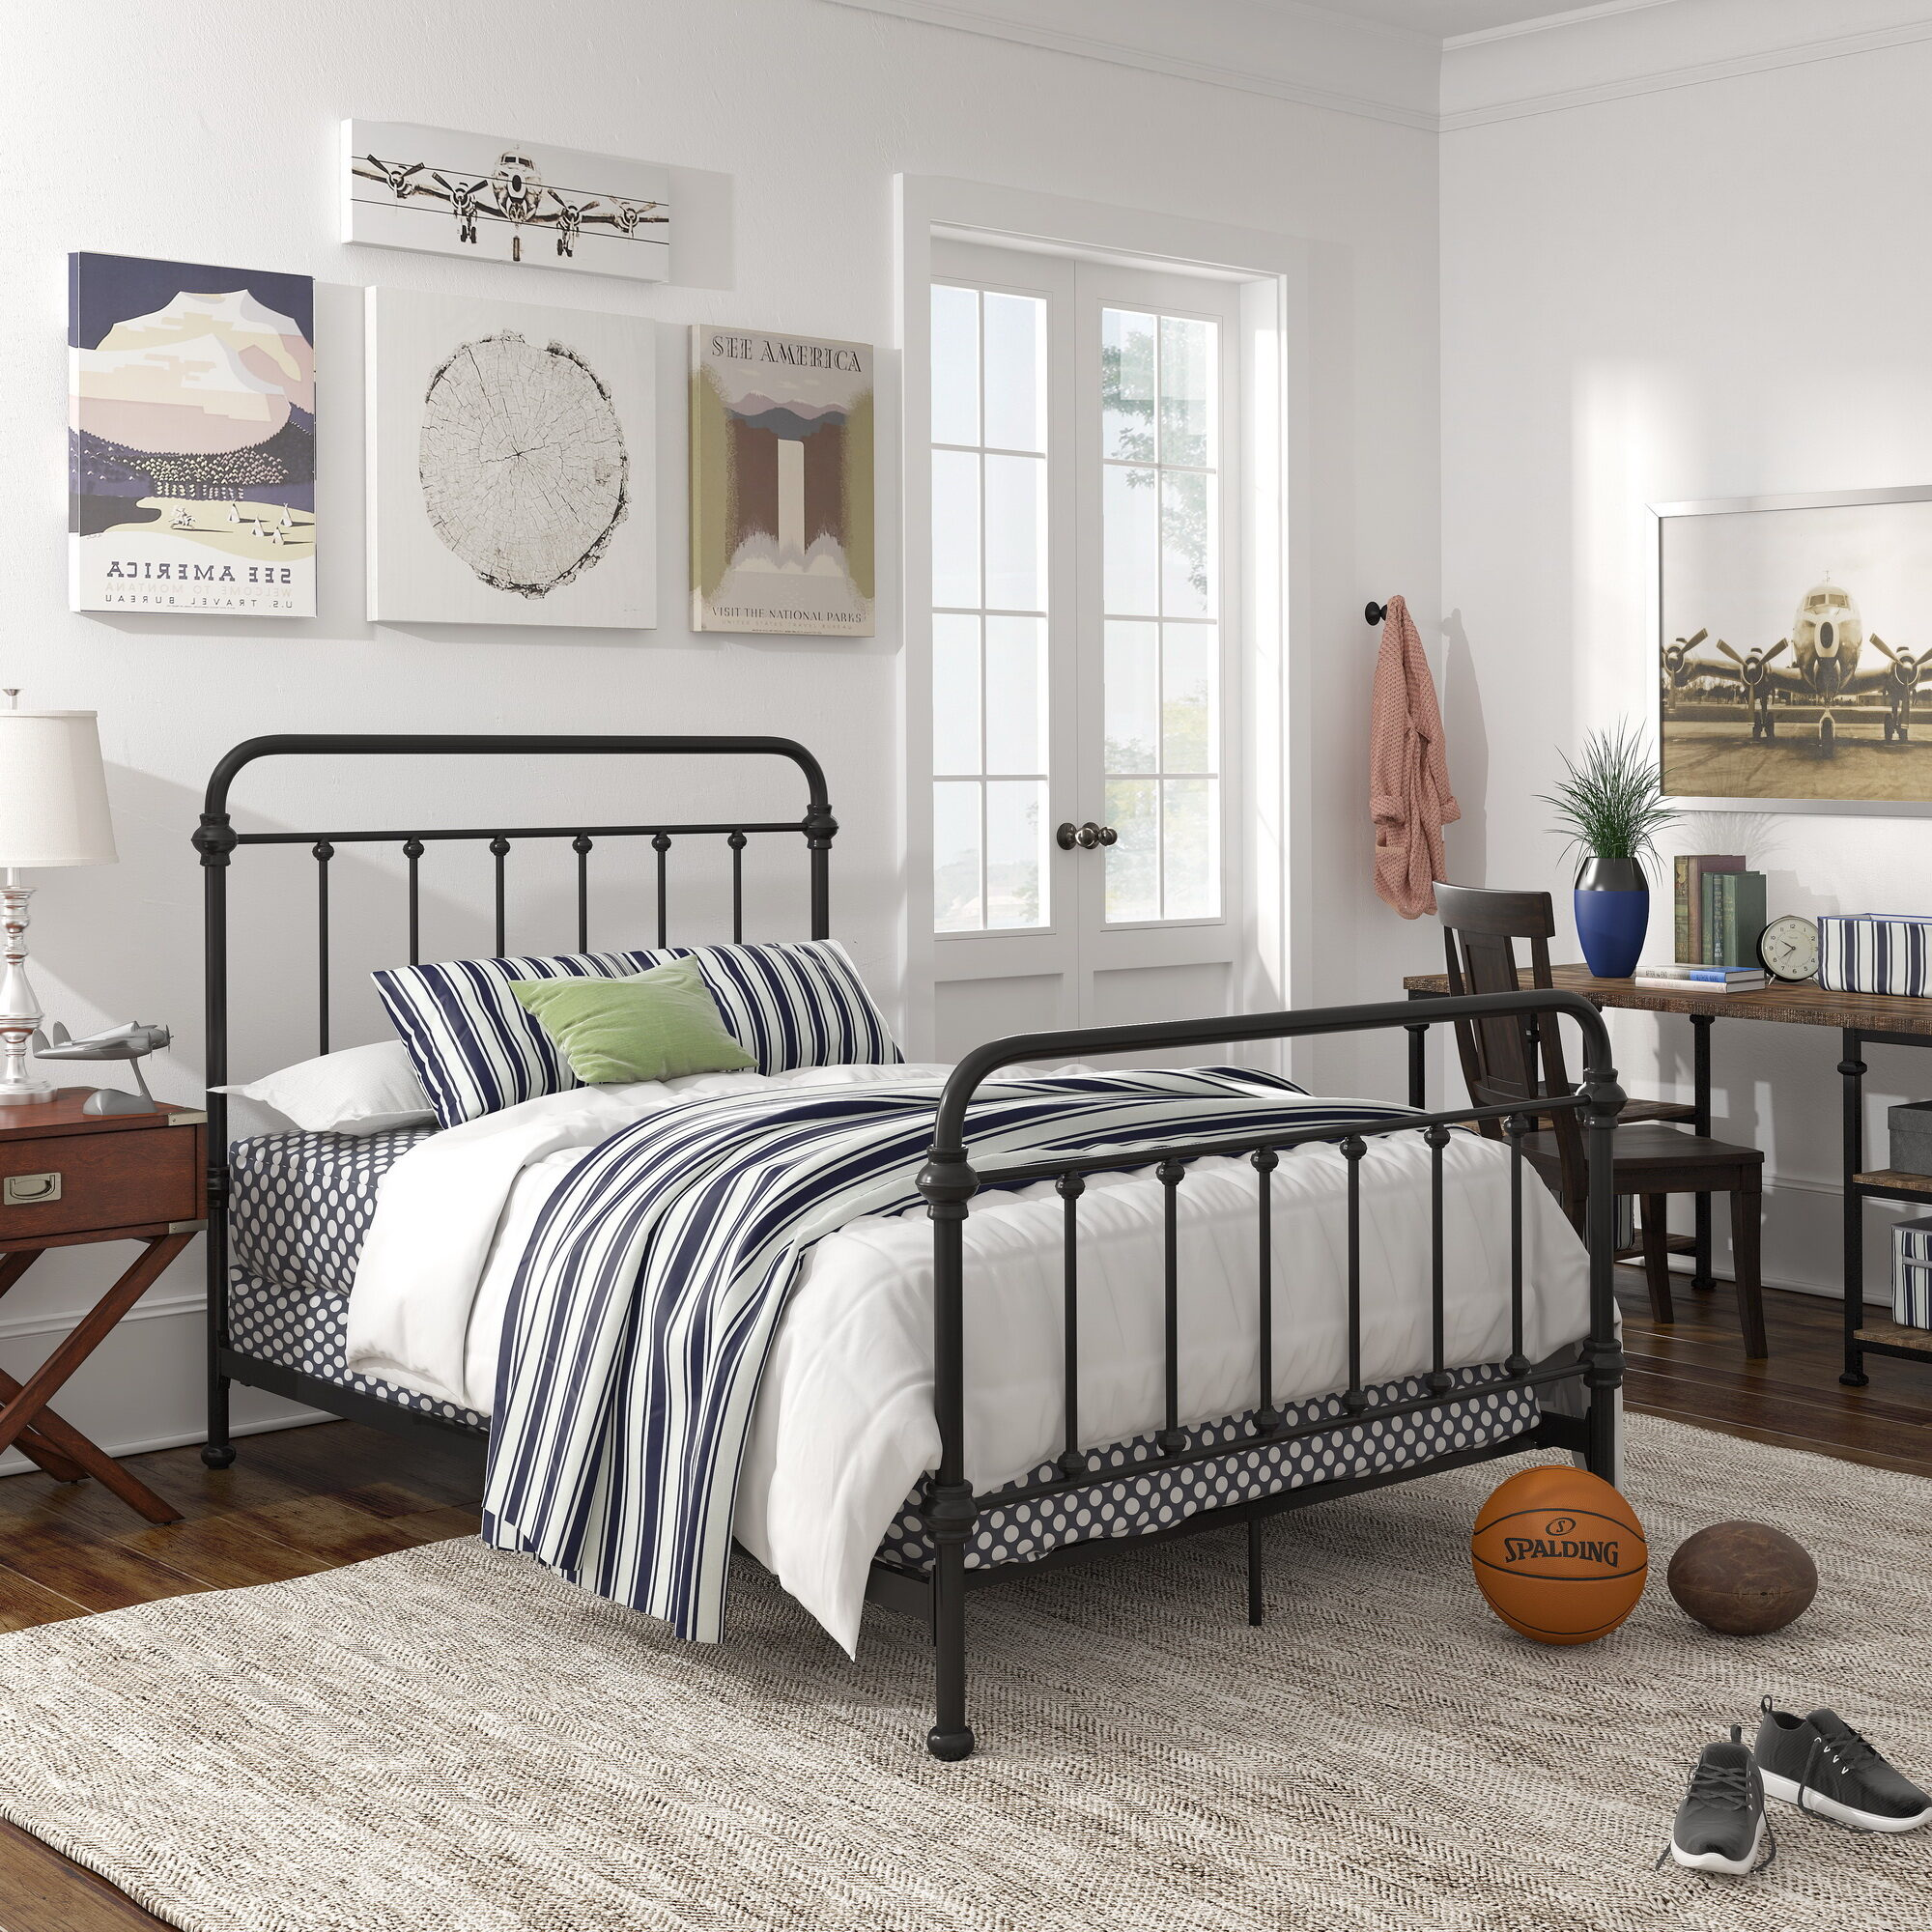 This is our Giselle Antique Graceful Dark Bronze Victorian Iron Bed by iNSPIRE Q Classic. The all-metal construction has a dark bronze finish and the head and footboards feature timeless, sleek lines that any teen will love.